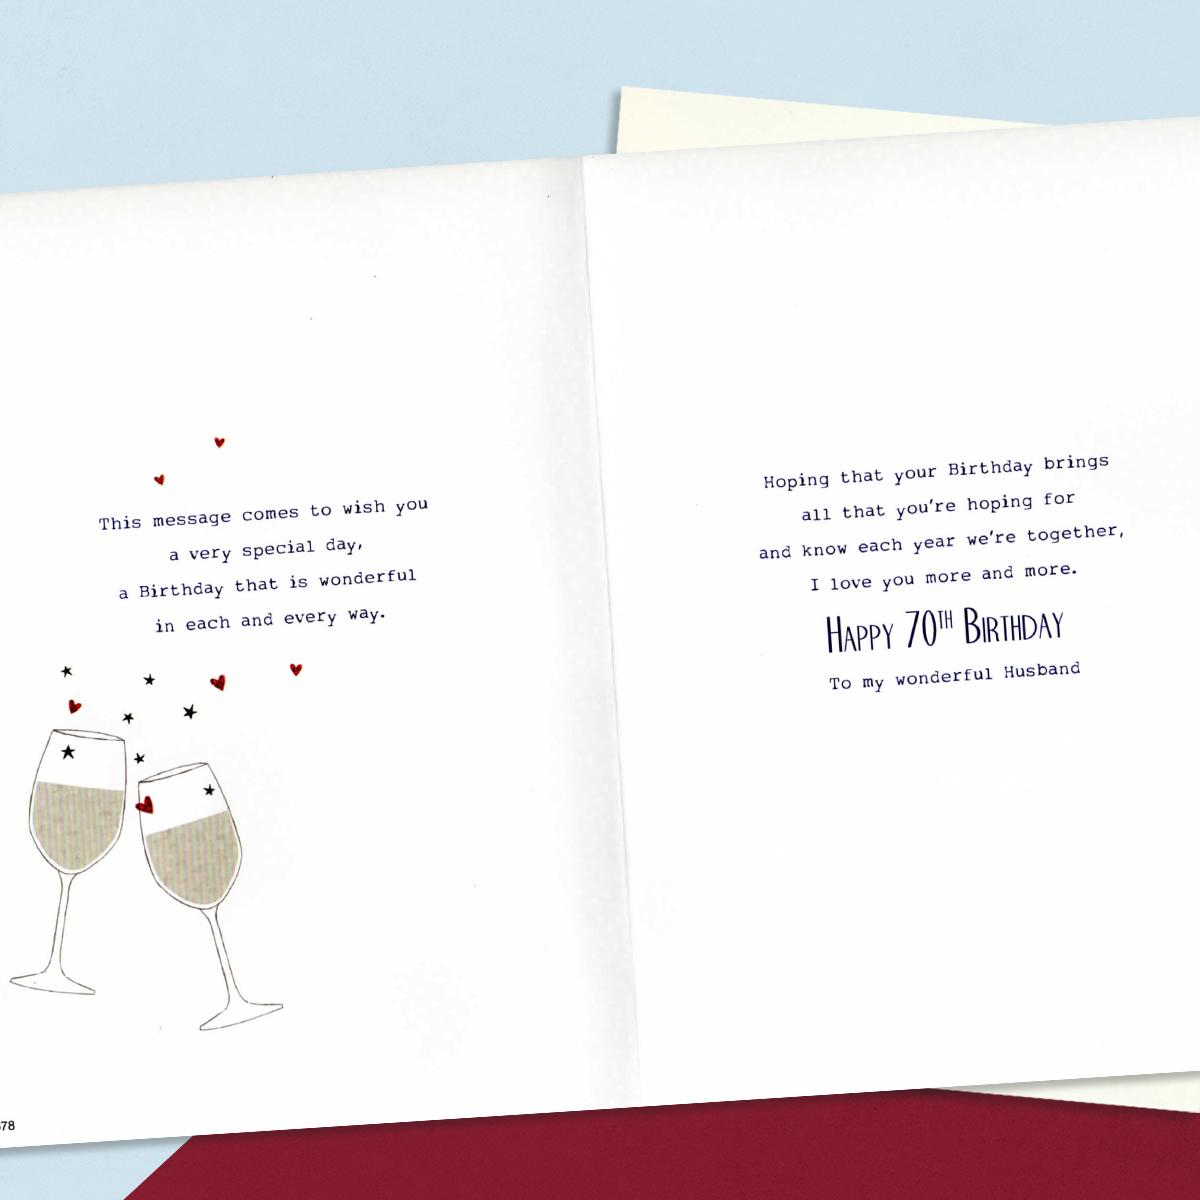 Age 70 Husband Birthday Card Inside Image Showing Layout And Printed Text